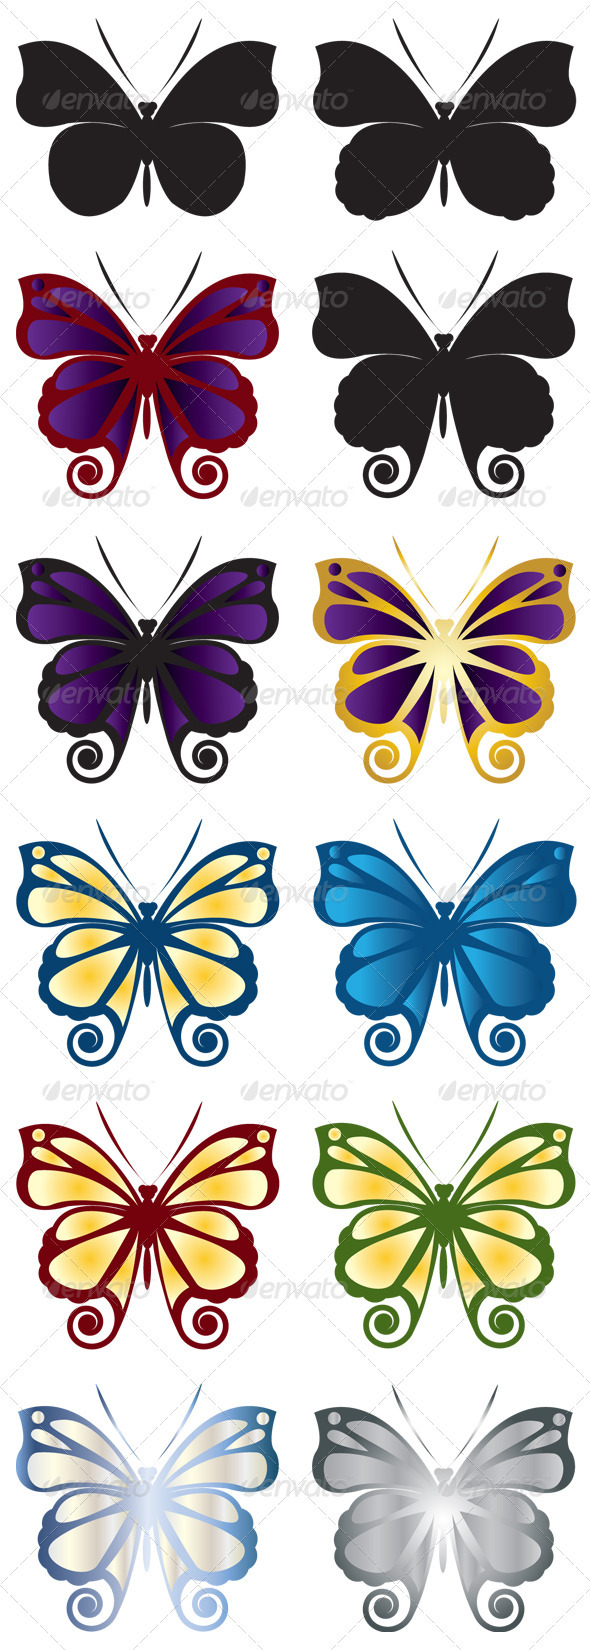 Butterfly symbol GraphicRiver - Vectors -  Characters  Animals 411511